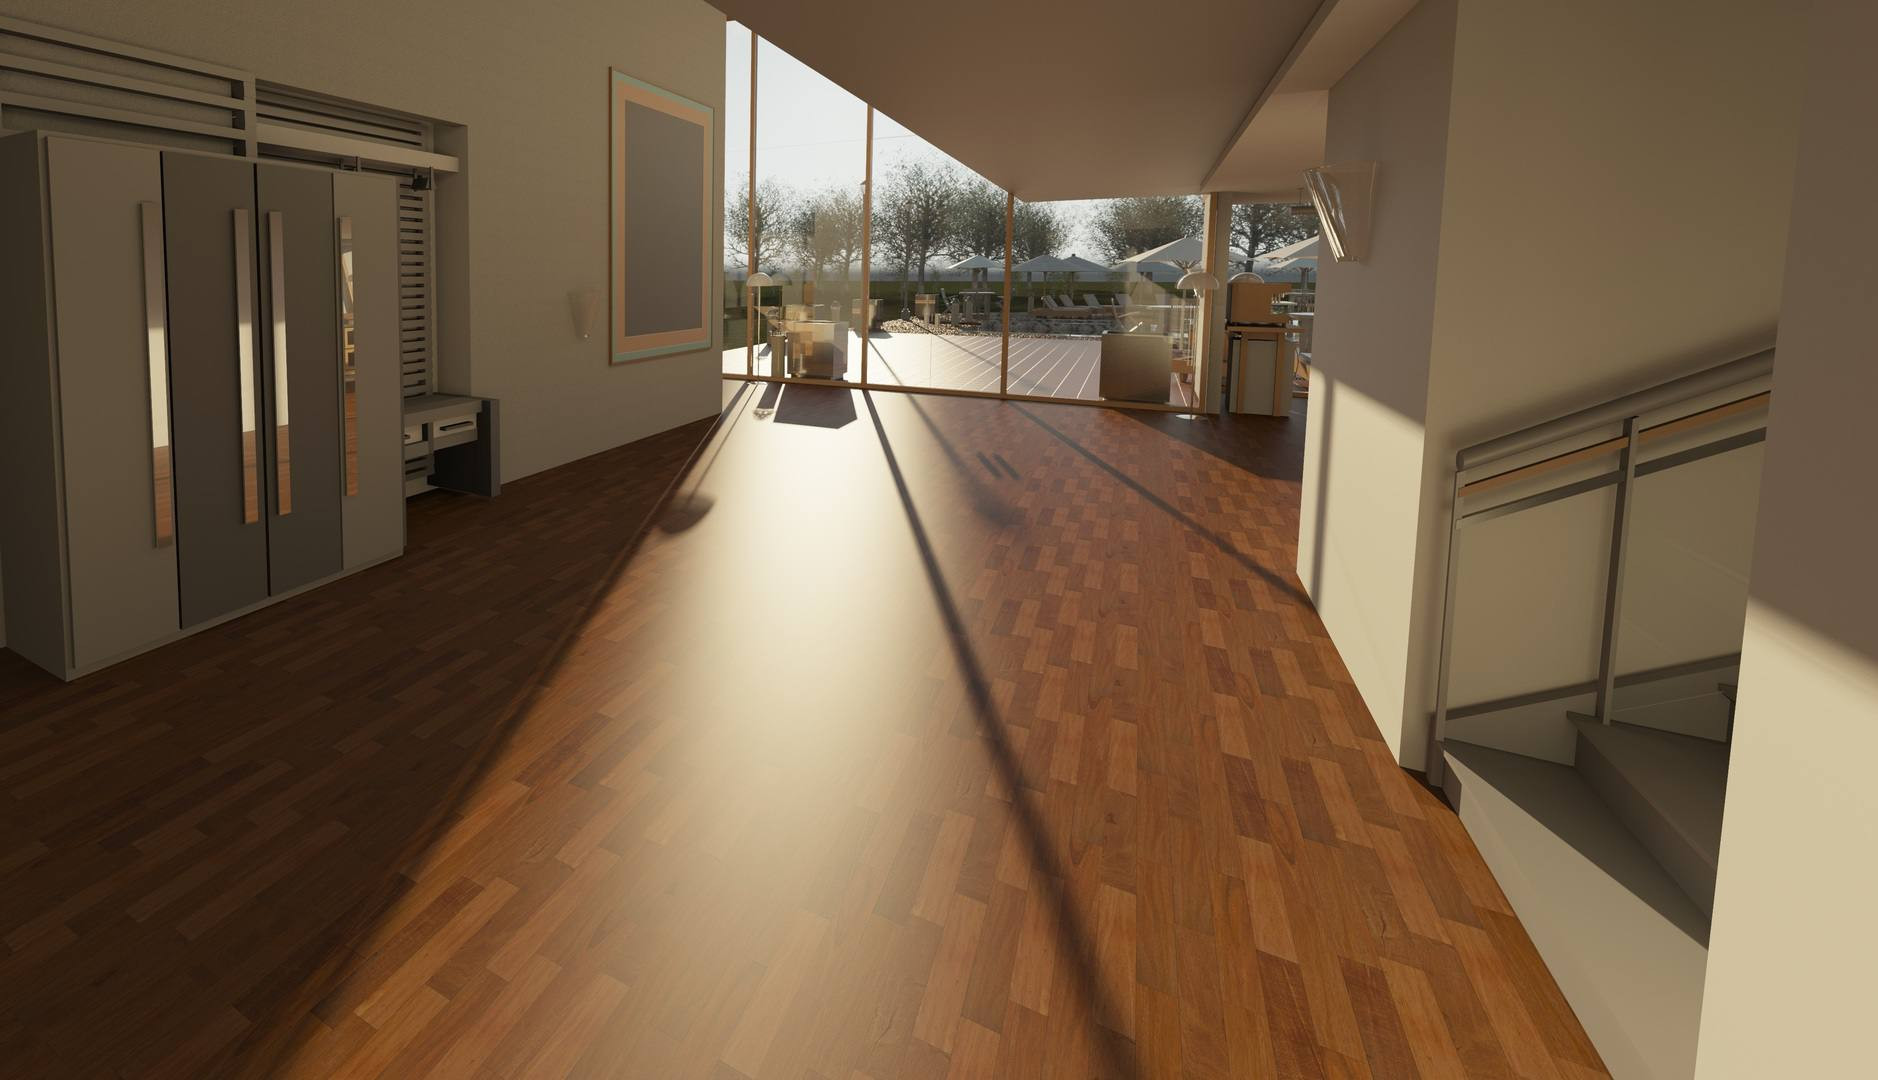 hardwood flooring labor cost of common flooring types currently used in renovation and building in architecture wood house floor interior window 917178 pxhere com 5ba27a2cc9e77c00503b27b9